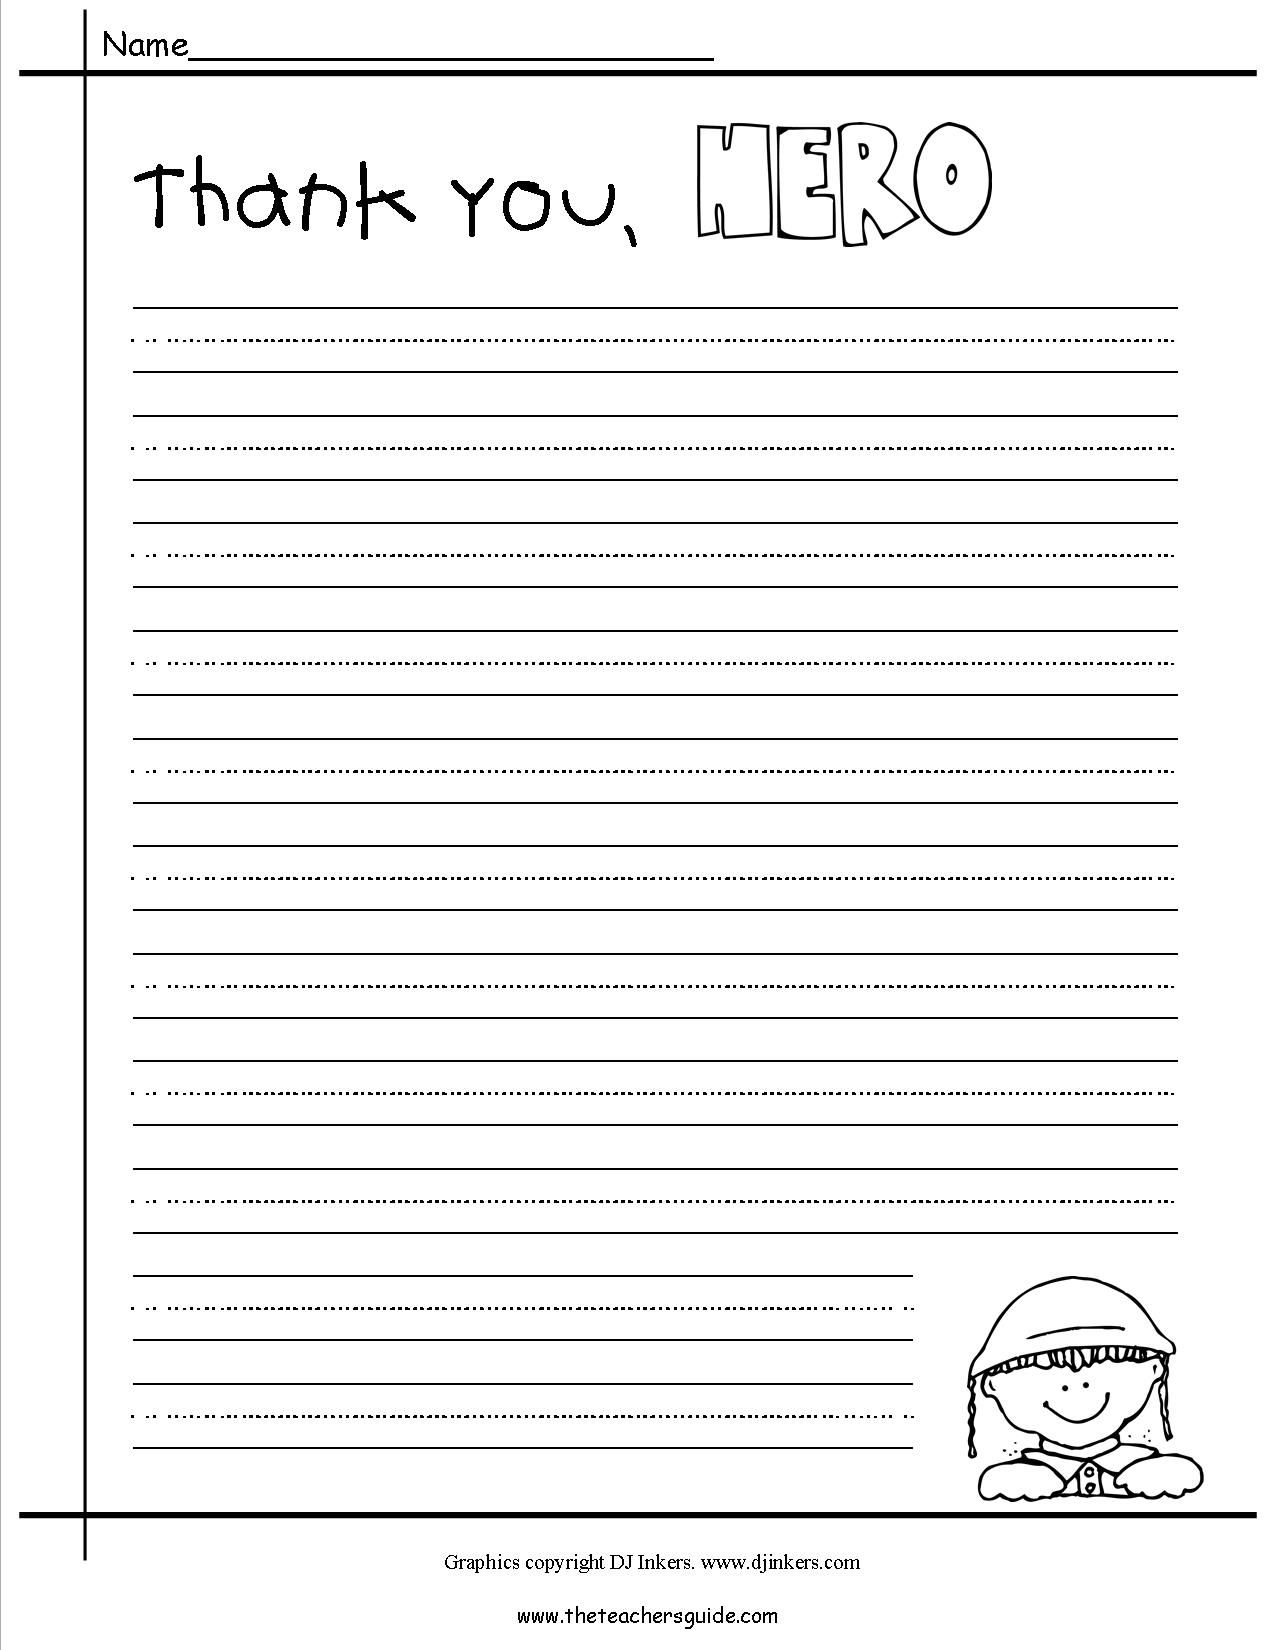 Veterans Day Thank You Letter Template - Veteran Thank You Letter Image Collections Letter format formal Sample